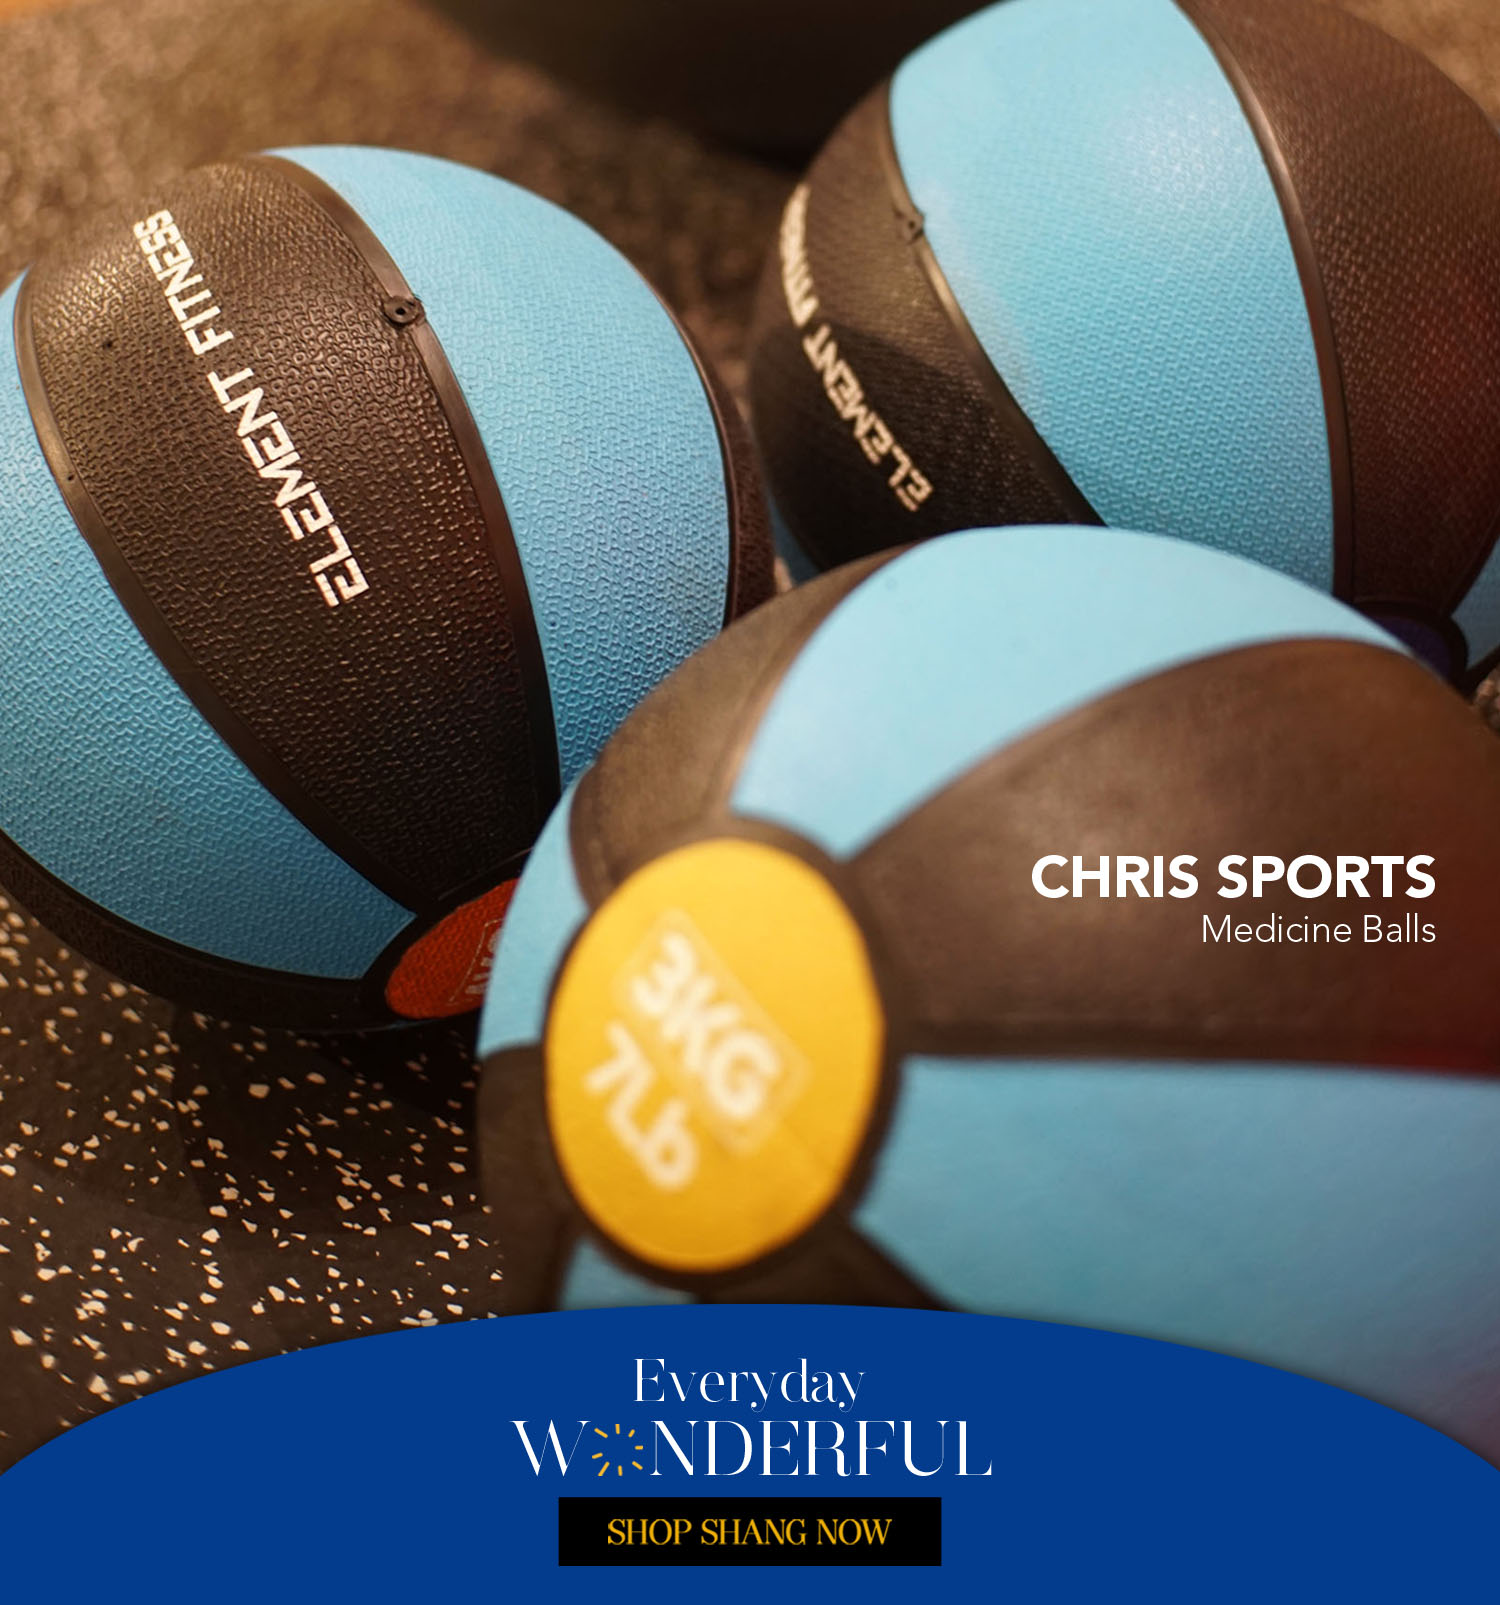 Medicine Balls from Chris Sports